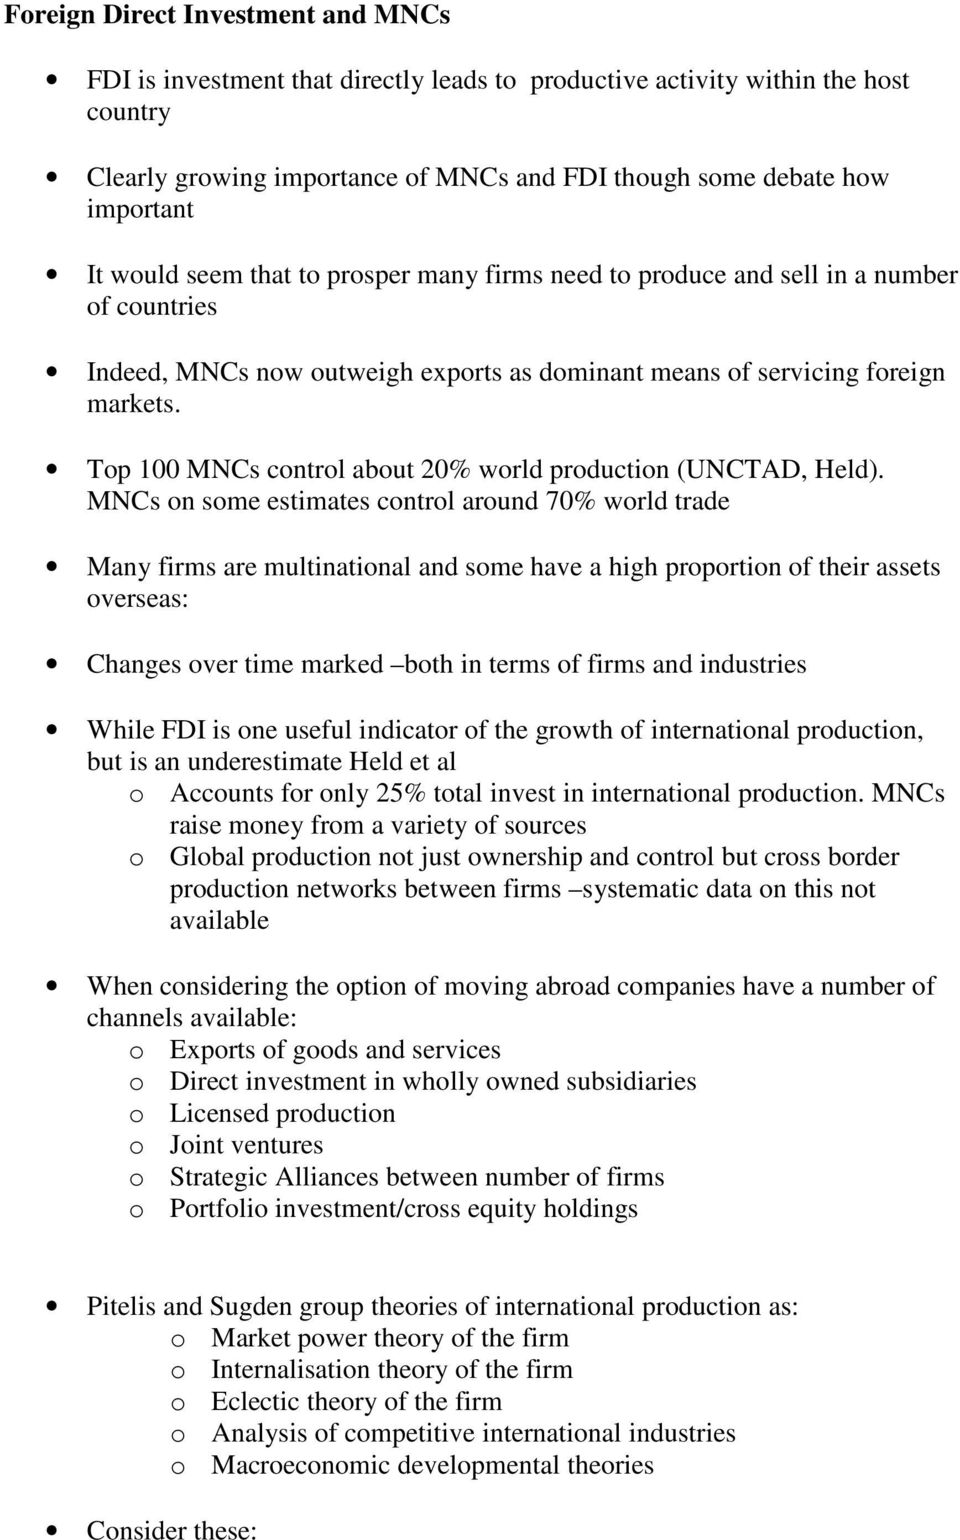 Top 100 MNCs control about 20% world production (UNCTAD, Held).